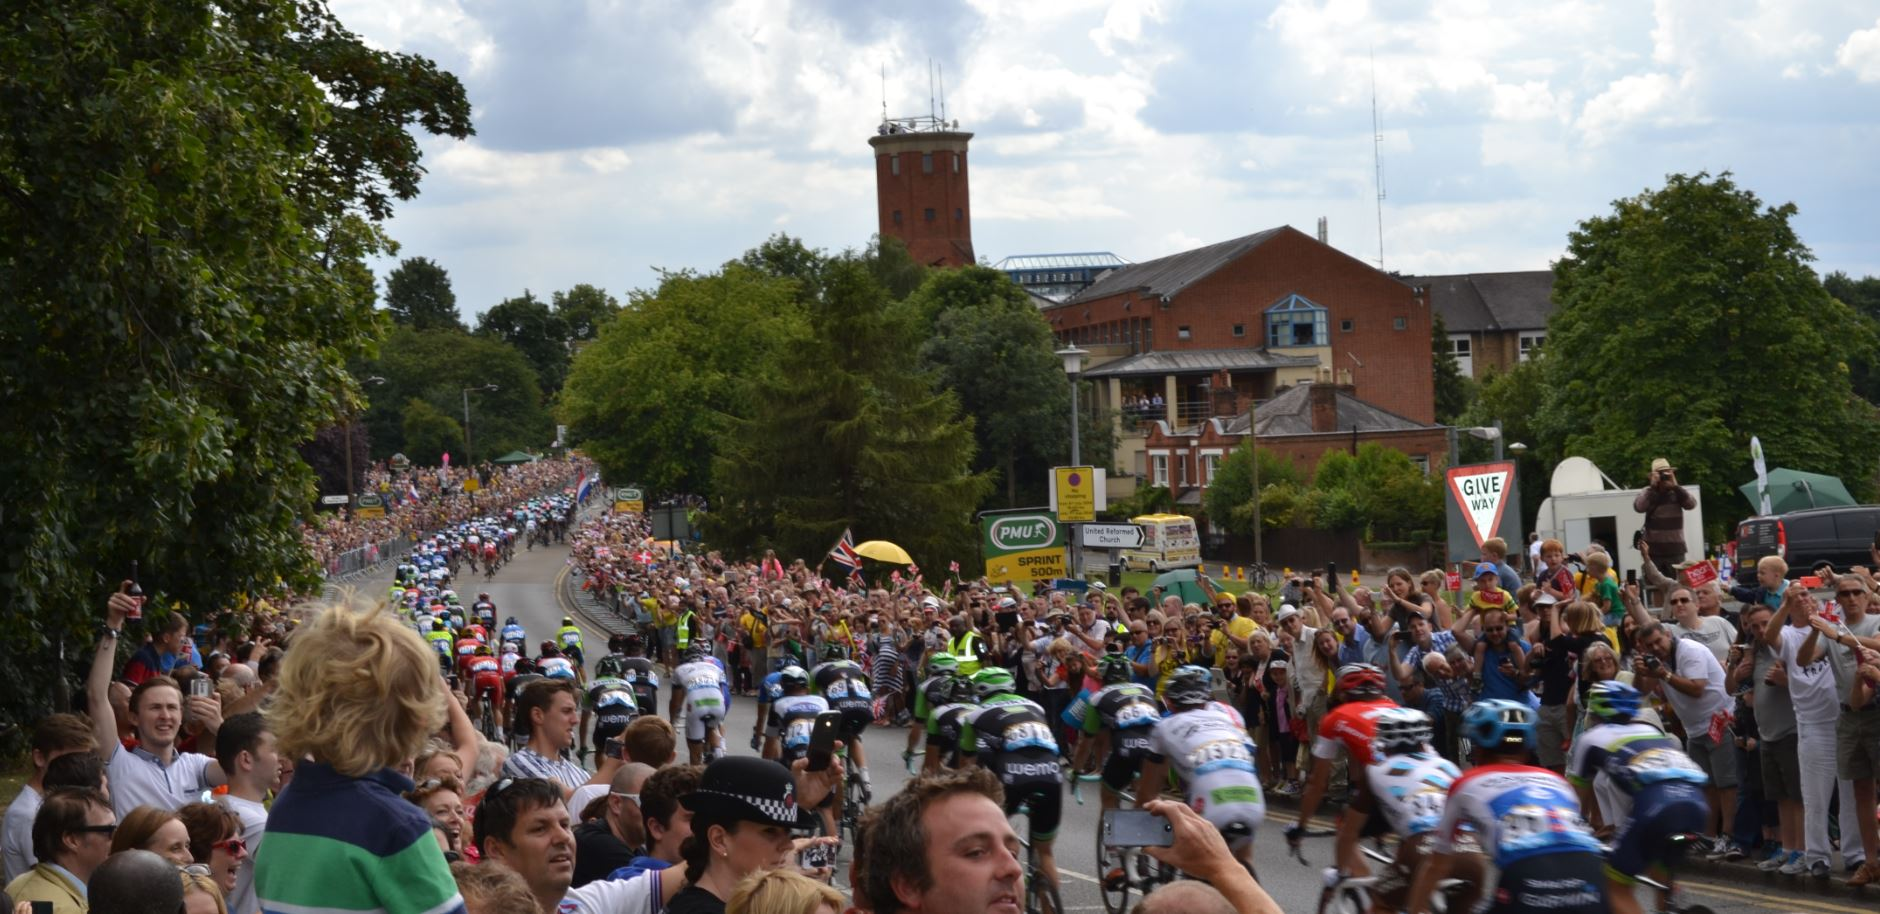 The following peloton